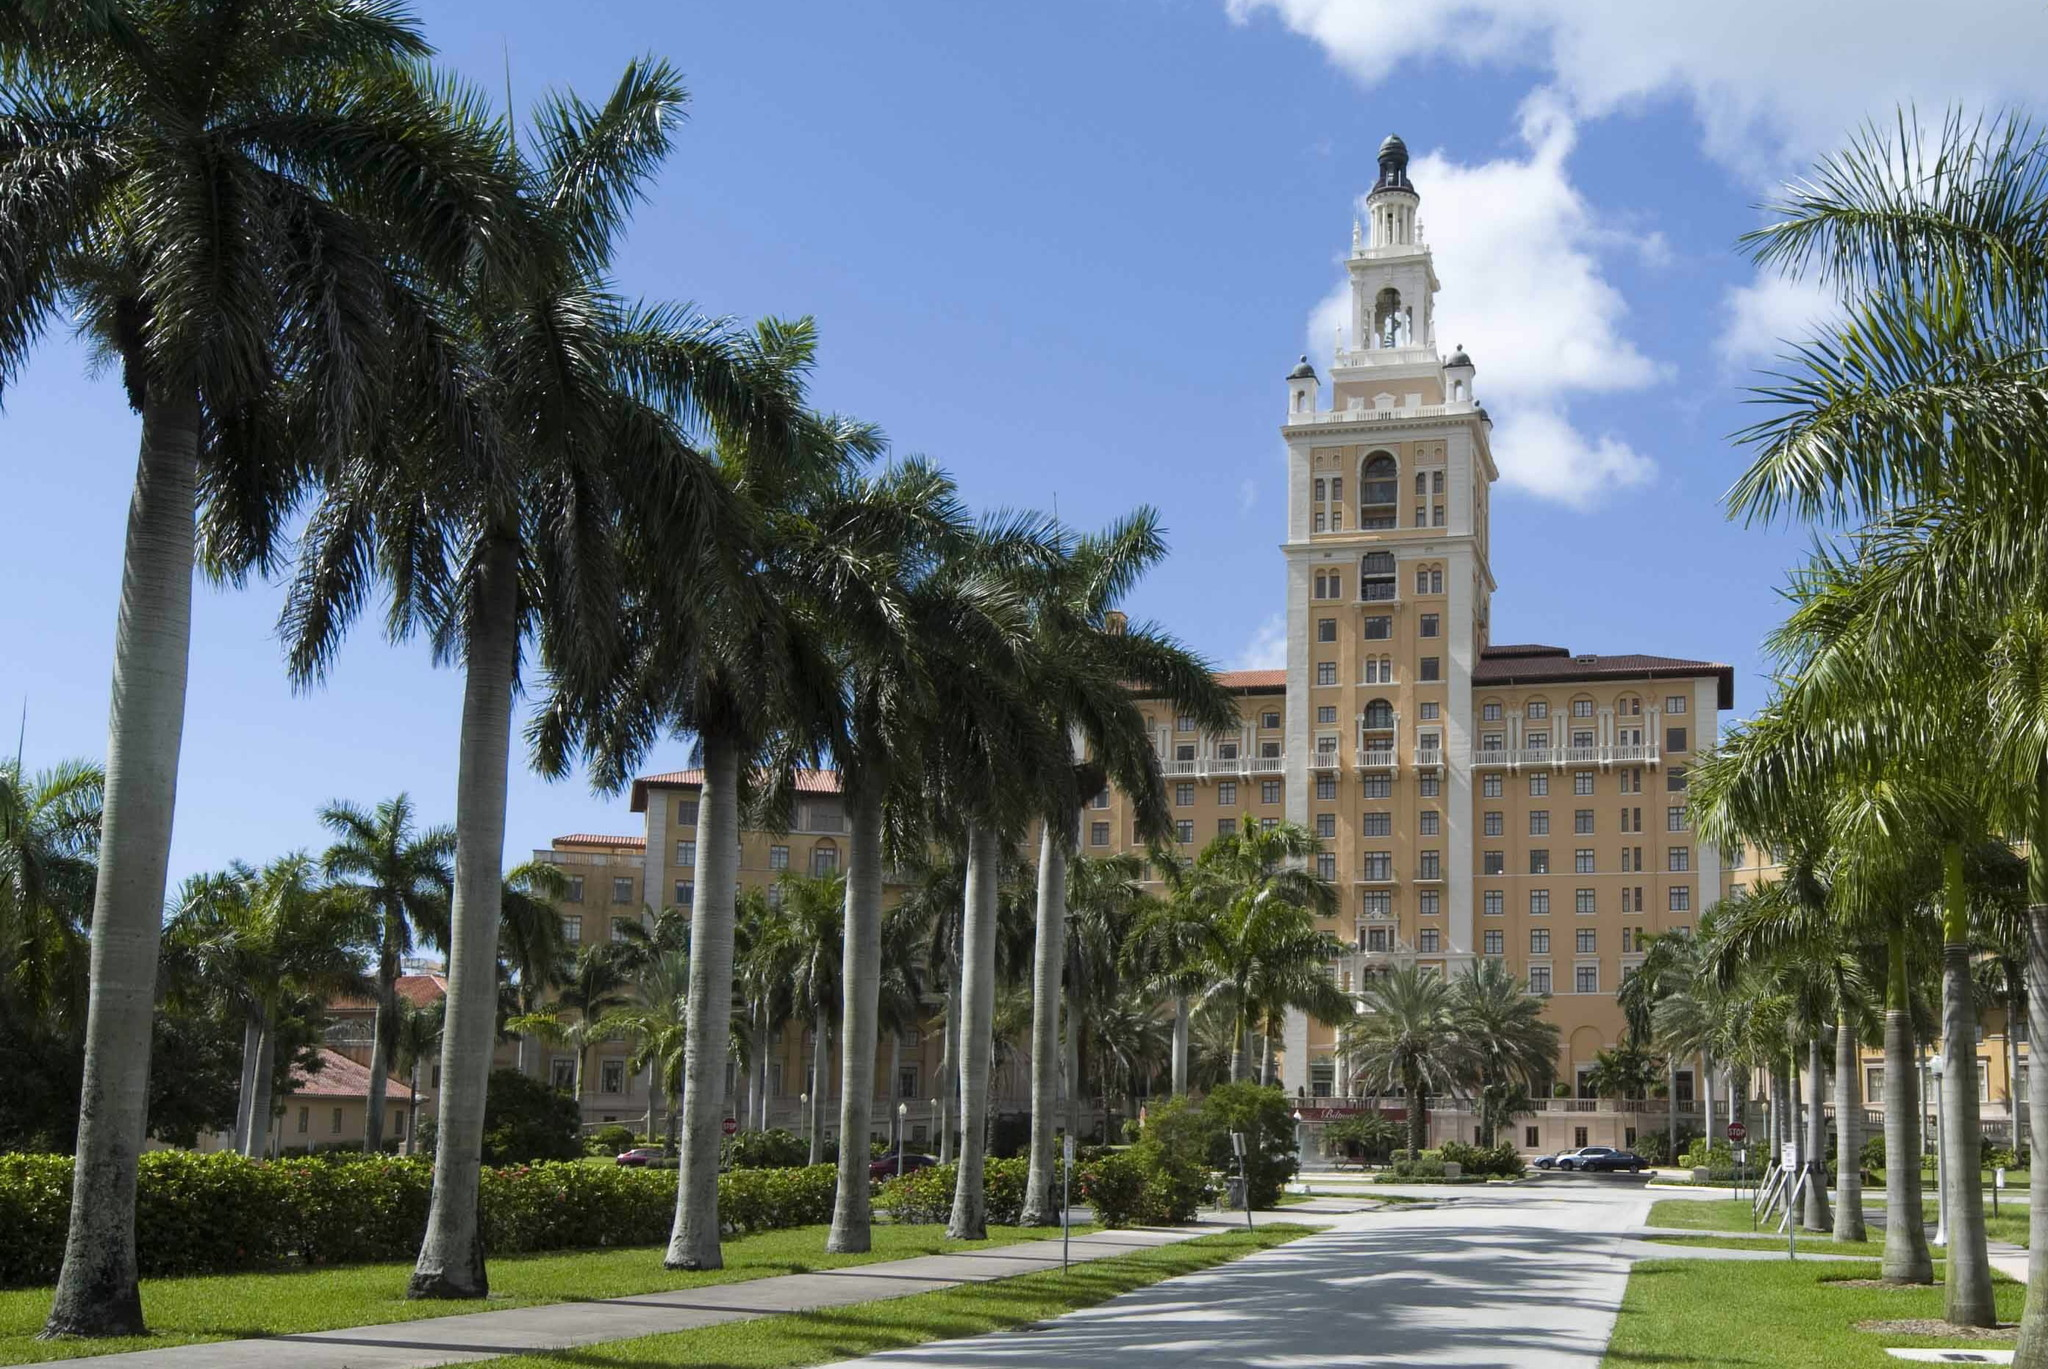 Things every South Floridian should do once - Biltmore Hotel, Coral Gables